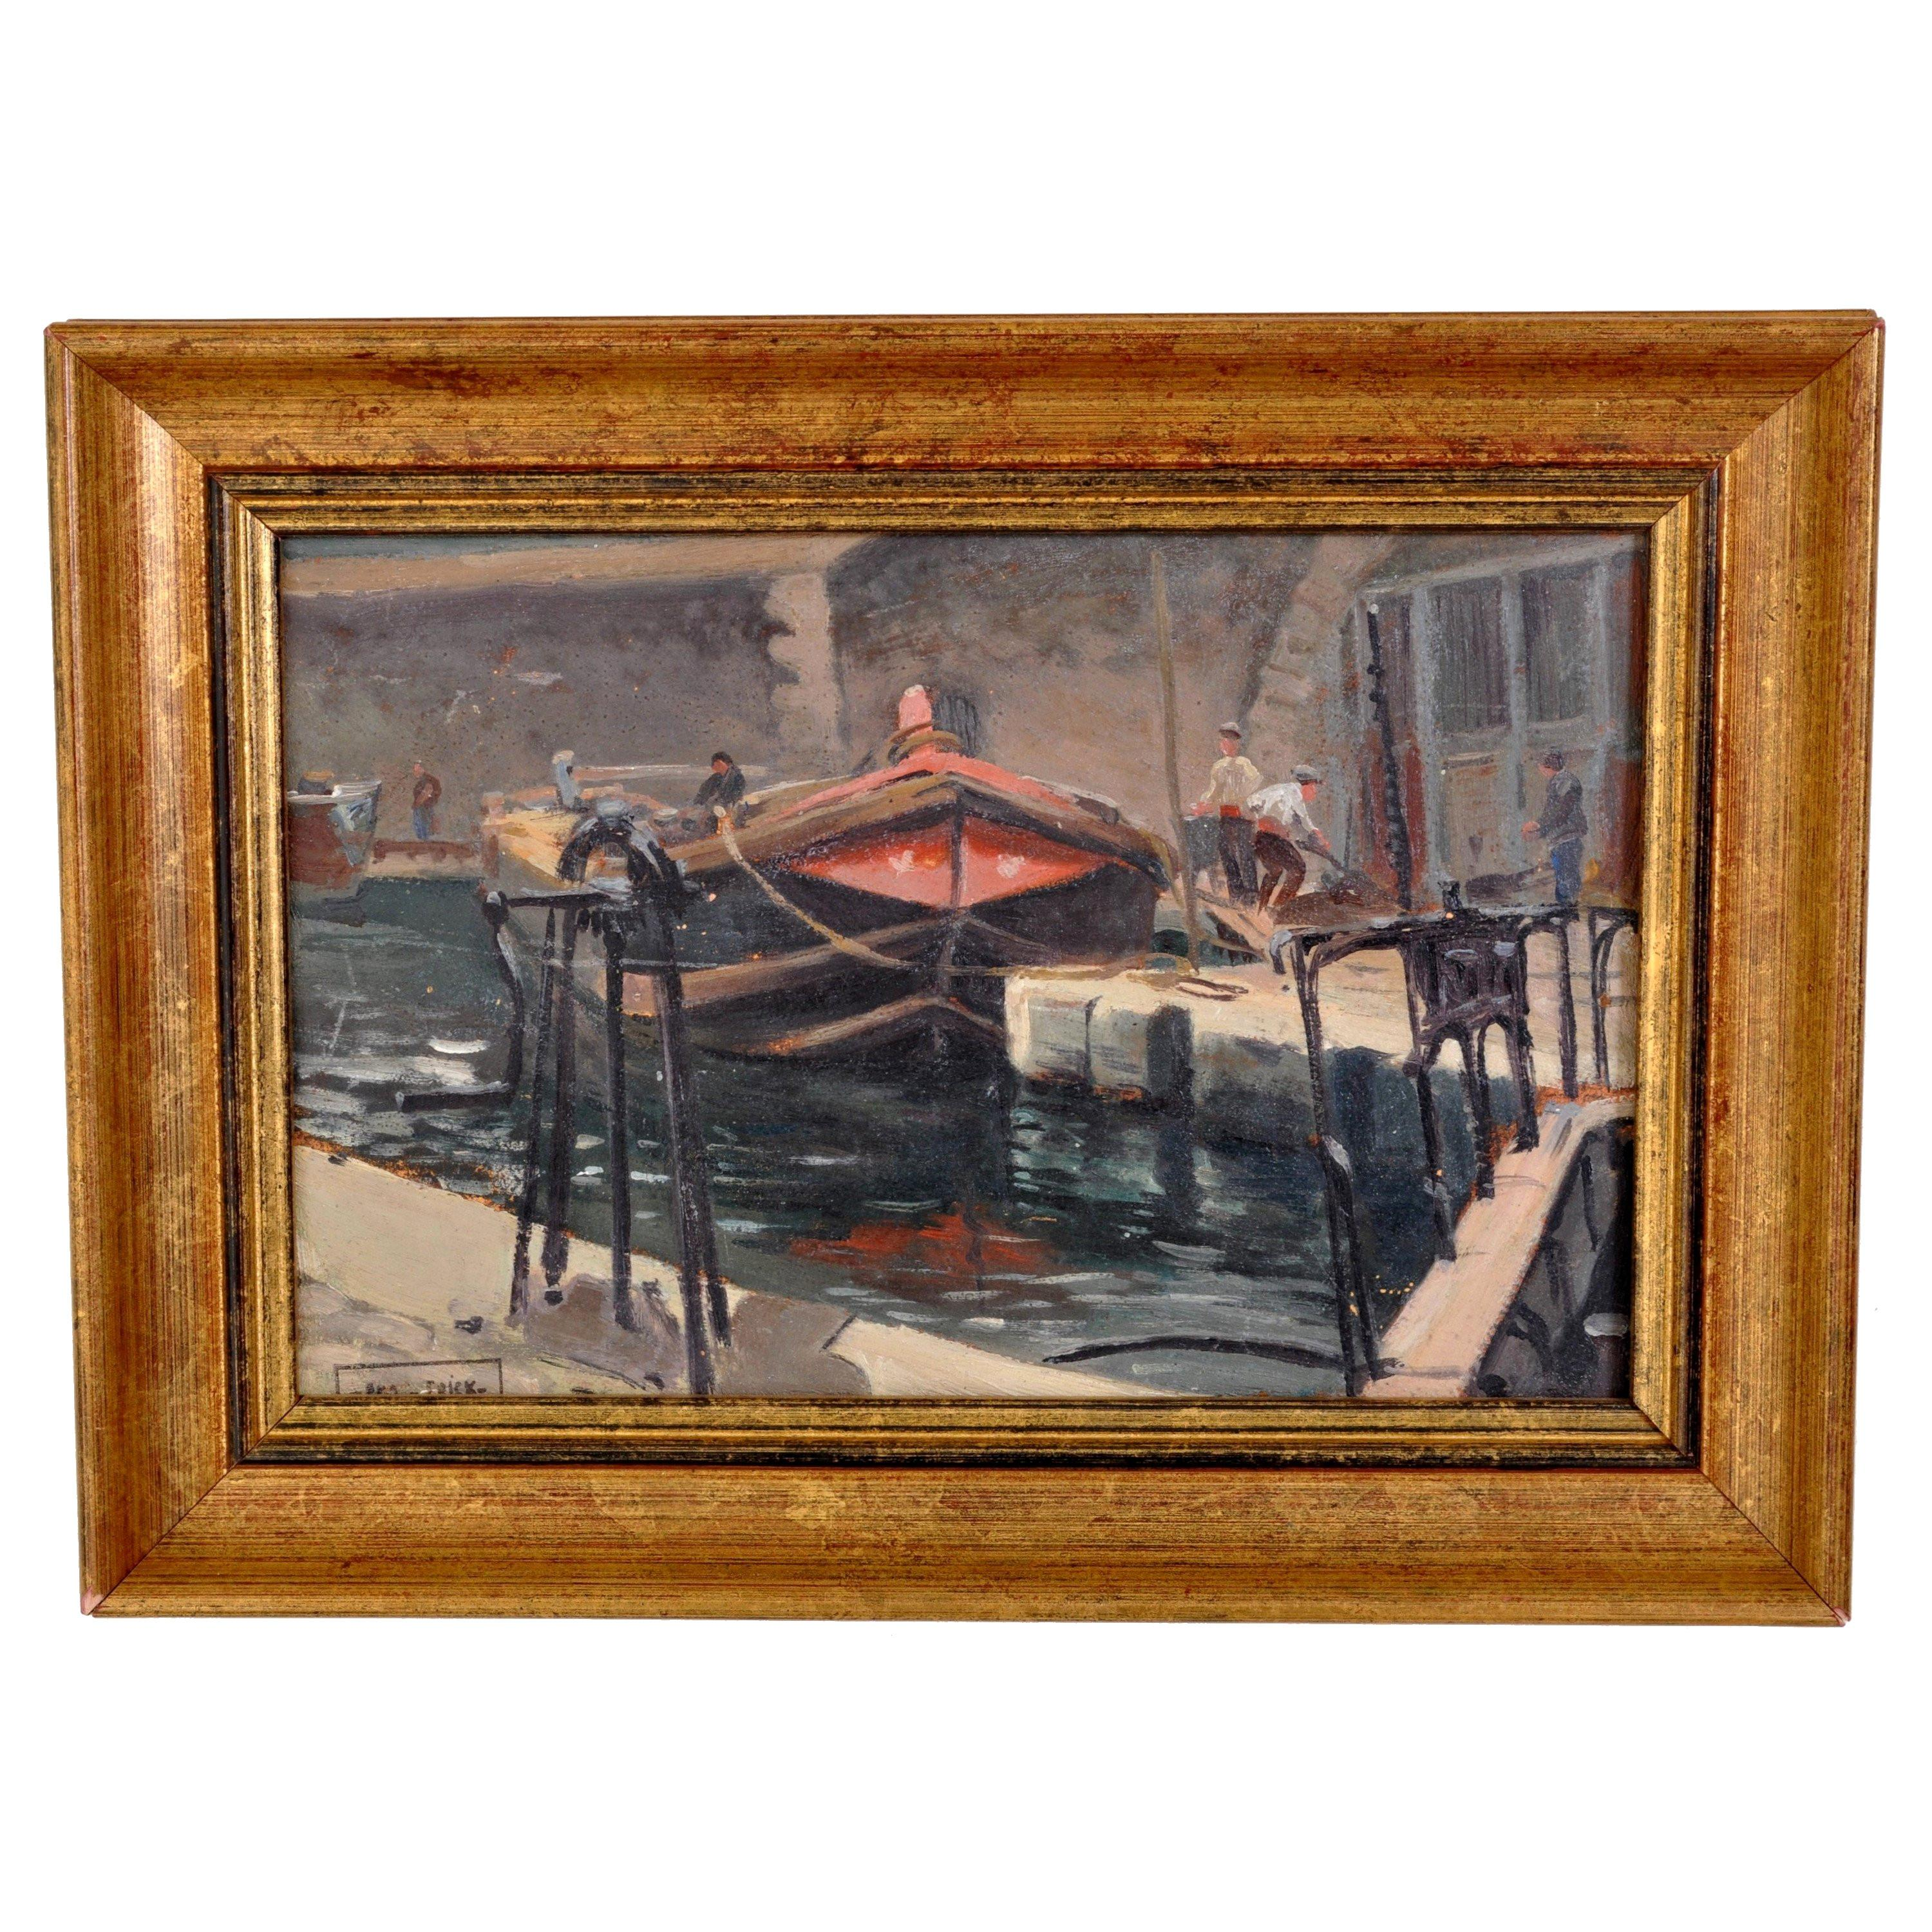 Antique French Impressionist Oil Painting Boat on River Scene Paul de Frick 1900